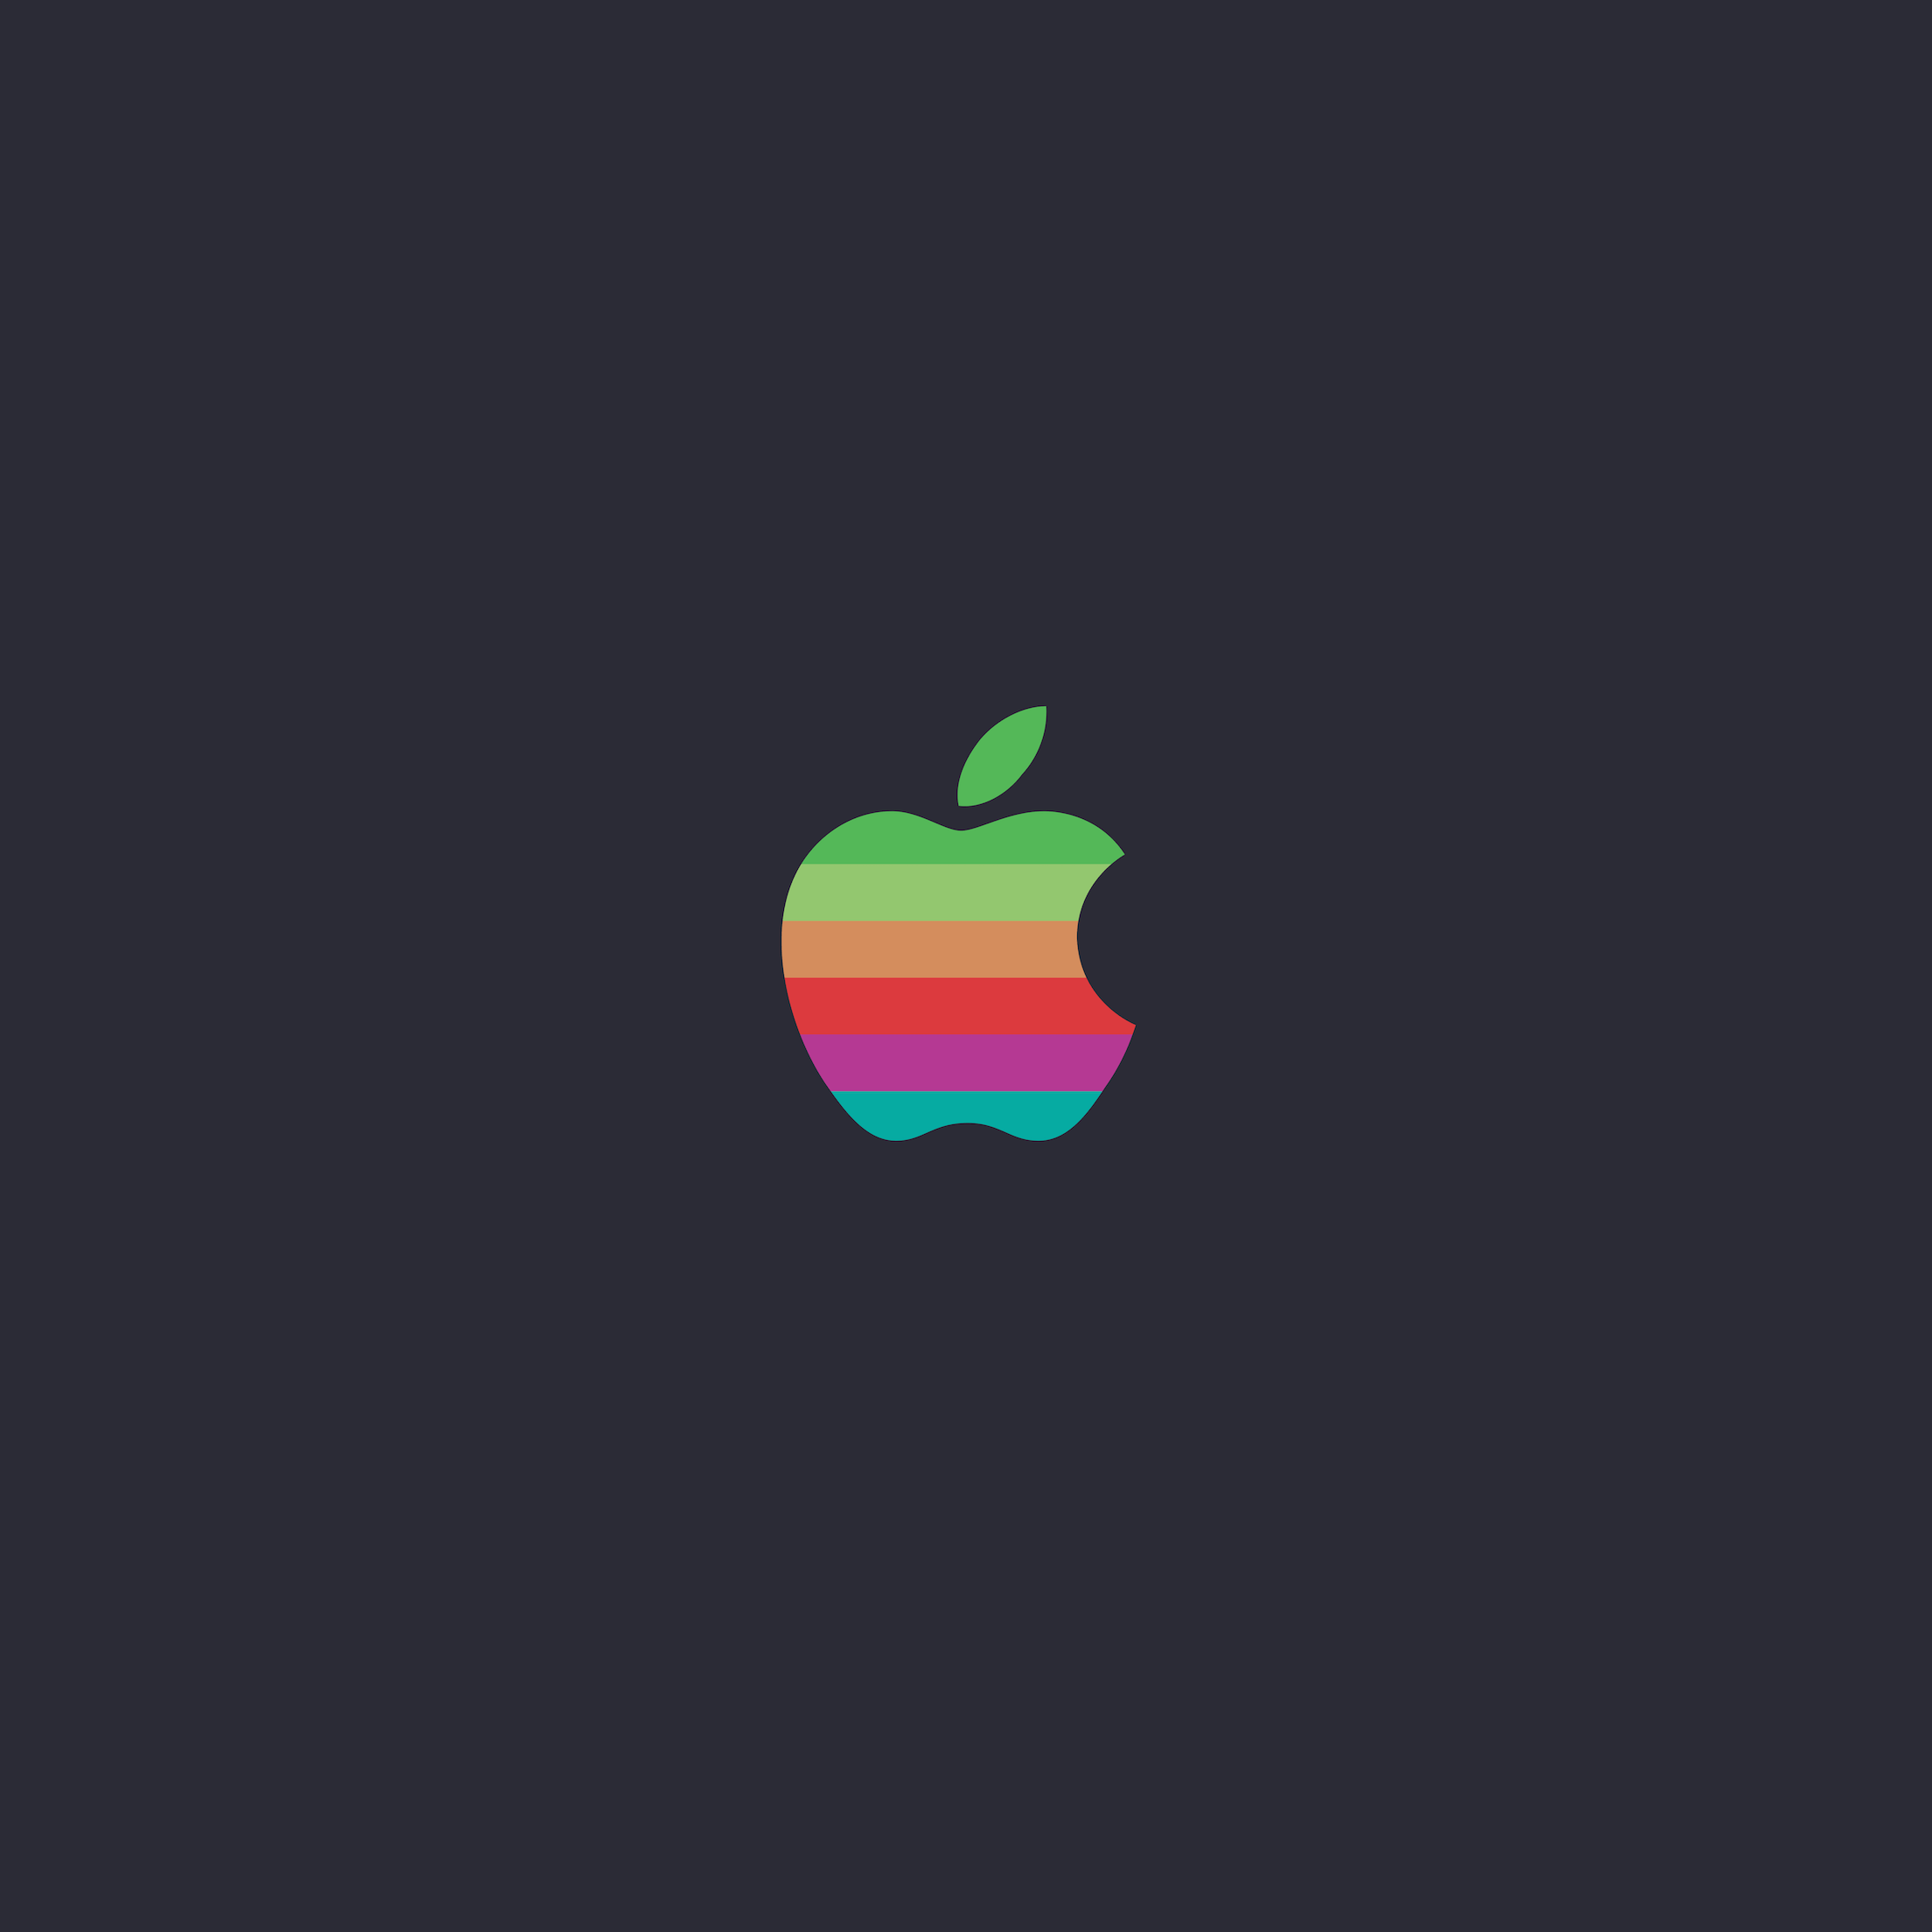 apple iphone logo hd wallpapers - wallpaper cave